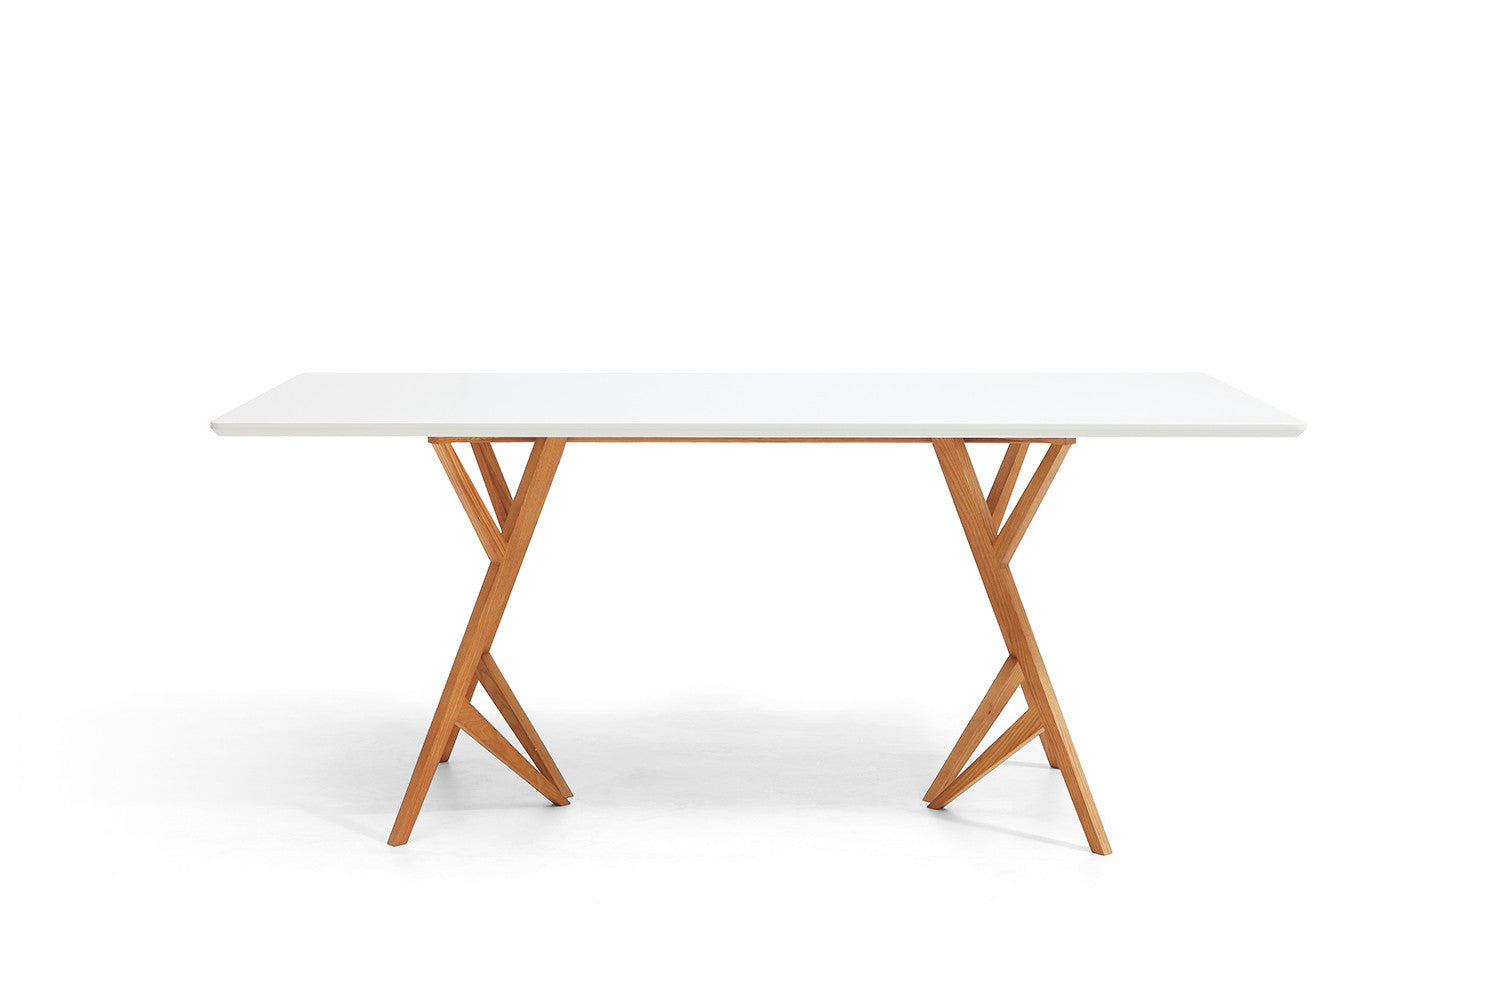 Table de salle manger design scandinave vispa dewarens - Table blanche en bois ...